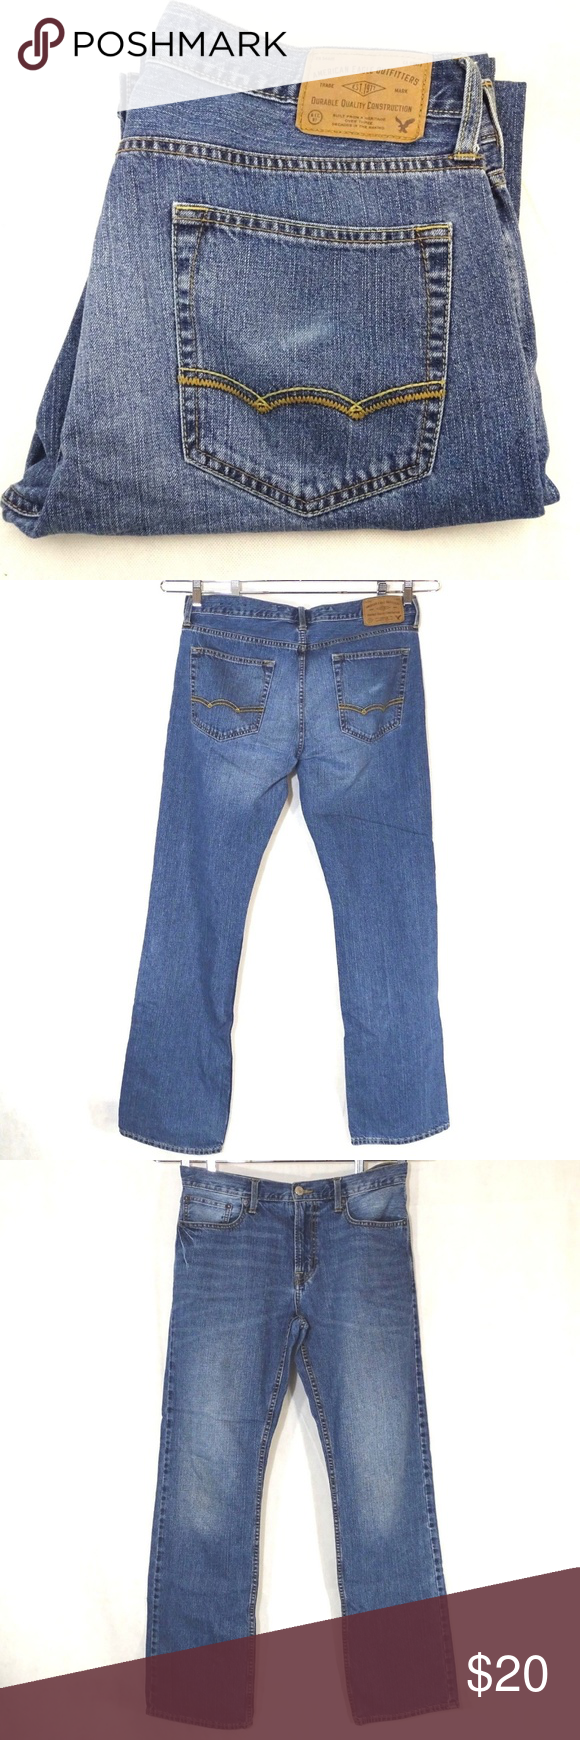 a13629e1ad7 American Eagle Outfitters AEO Original Boot Jeans ITEM DESCRIPTION: American  Eagle Outfitters AEO Original Boot